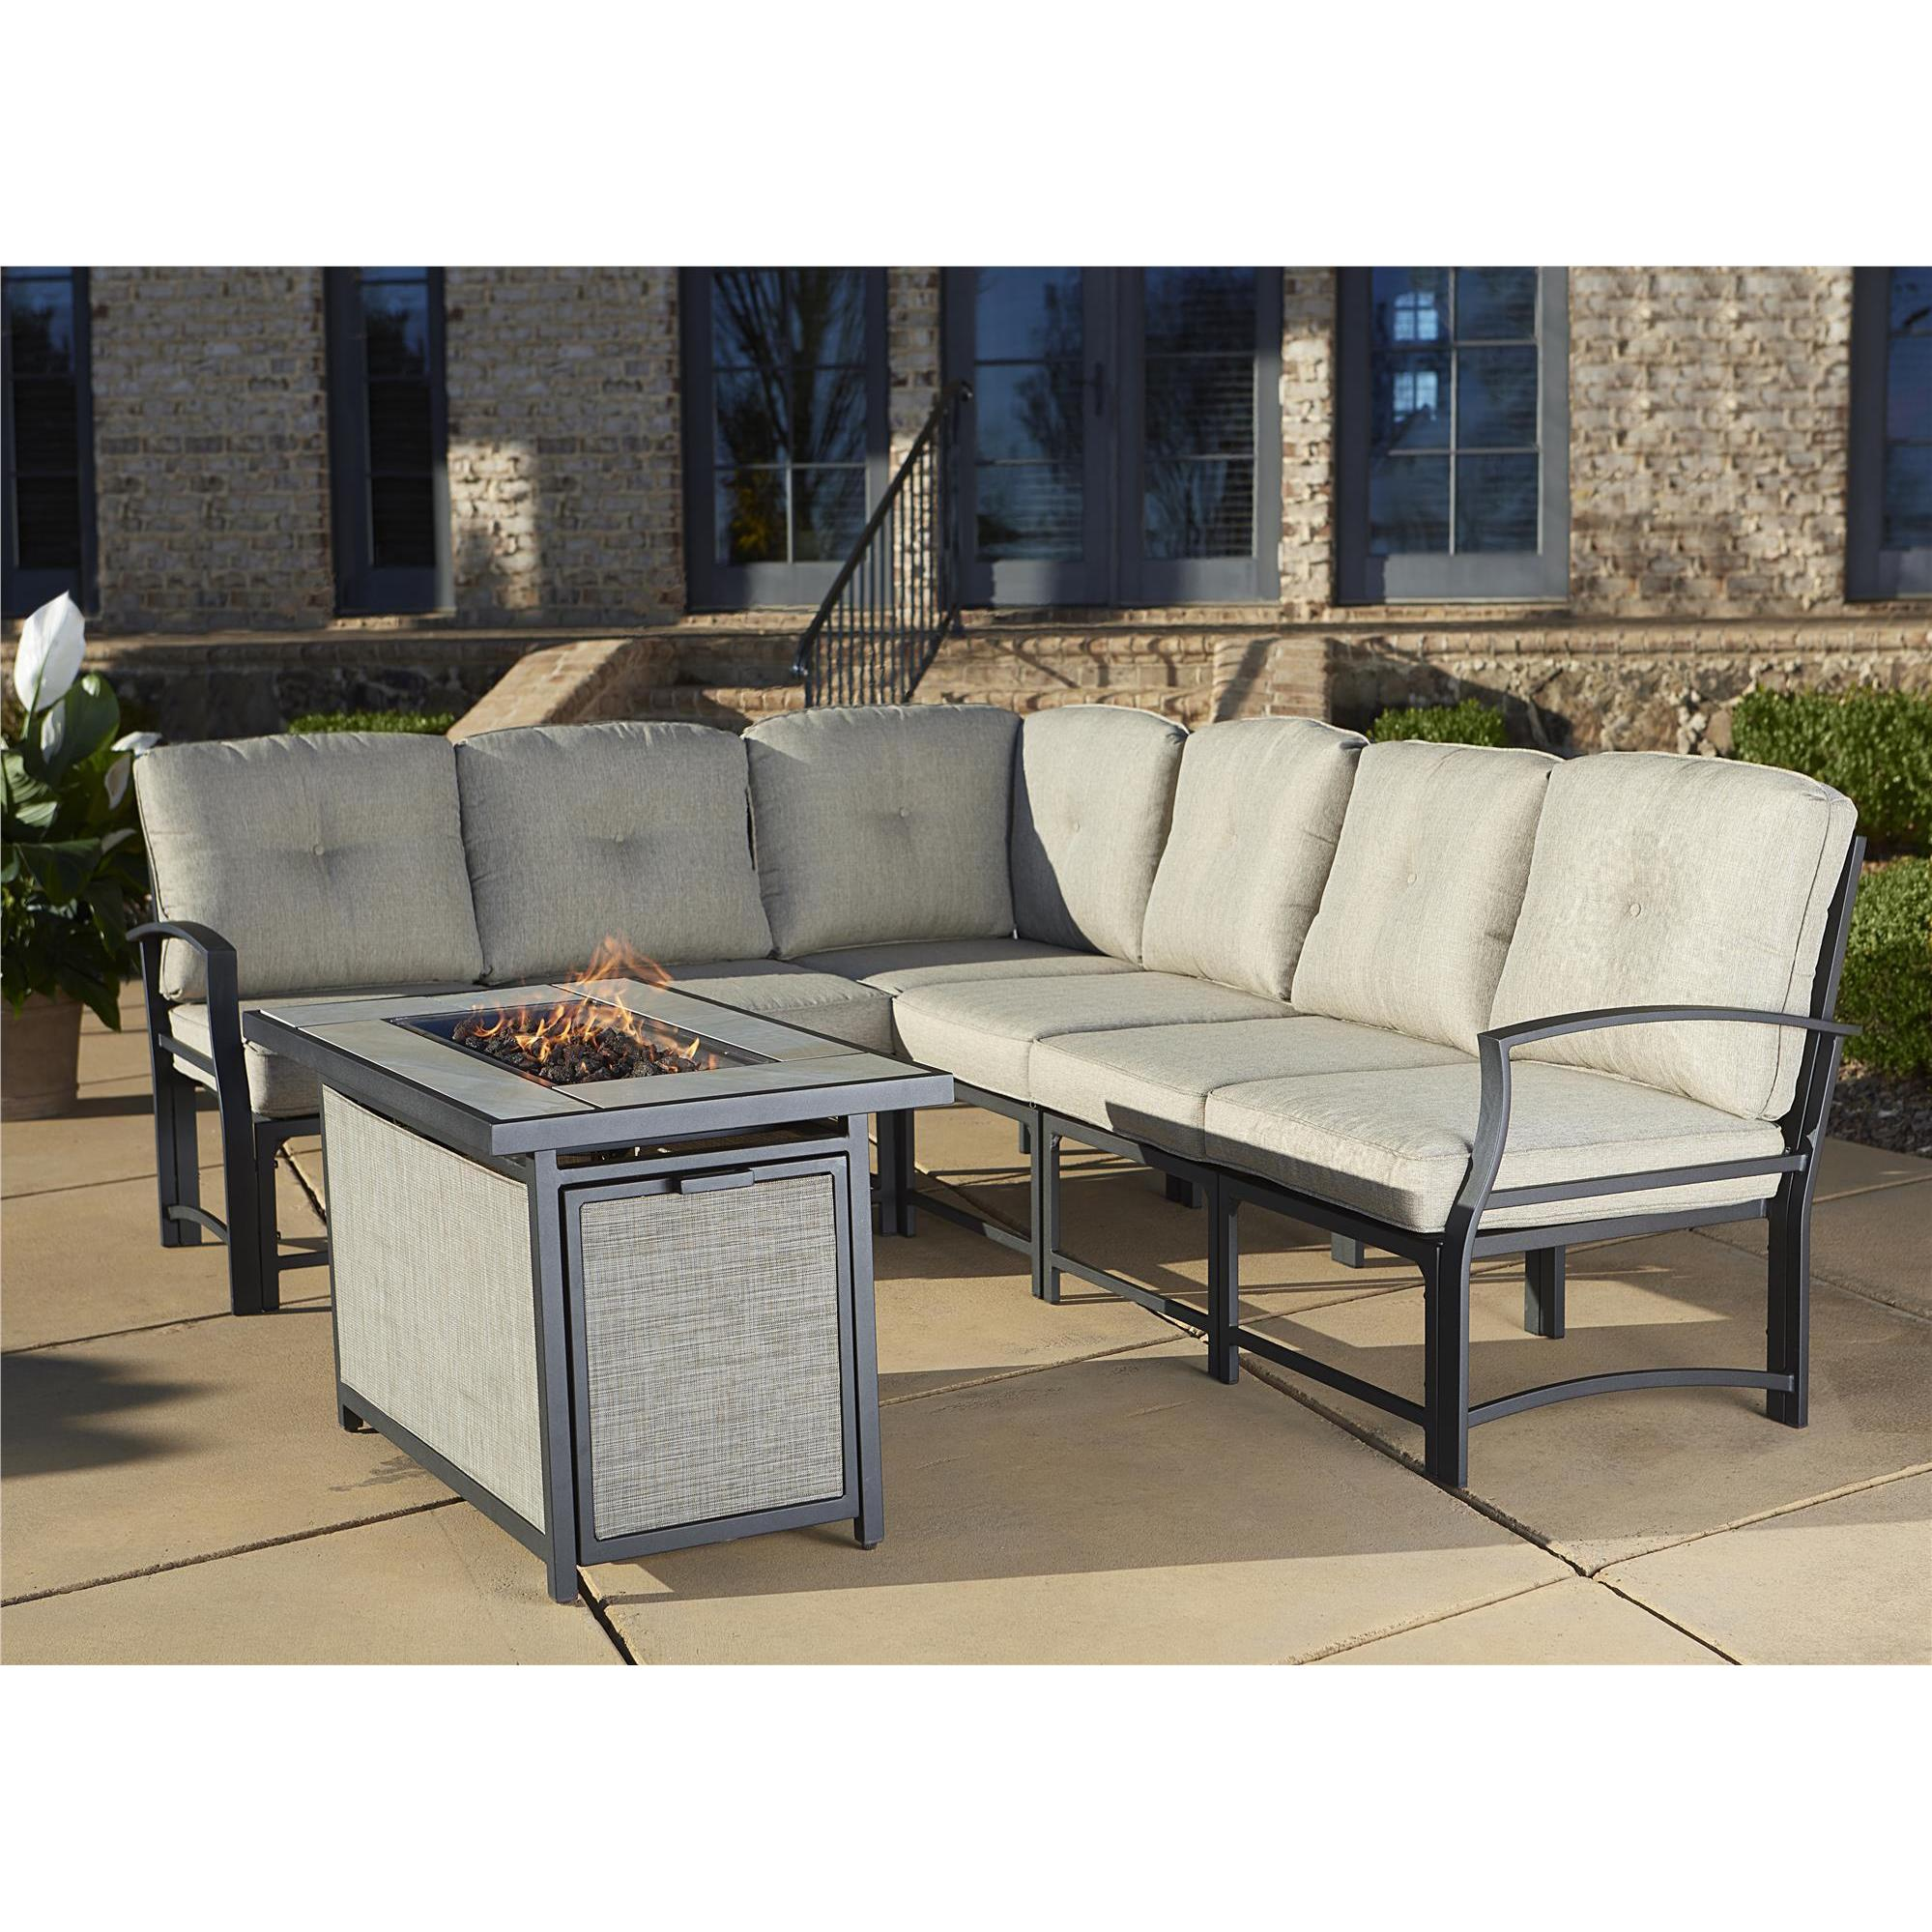 Cosco Outdoor Aluminum Sofa Sectional Patio Set with Gas ...